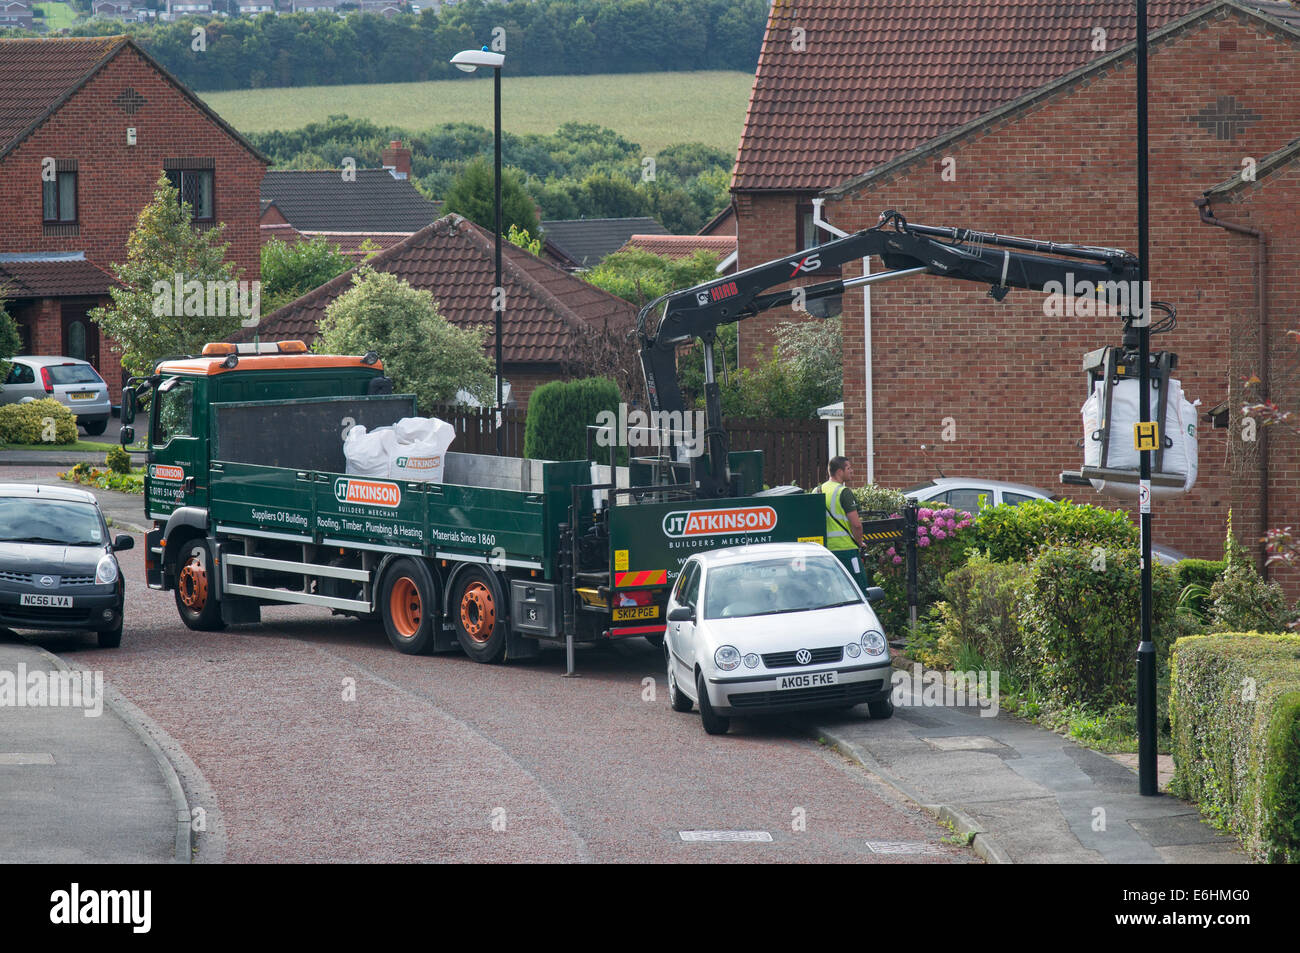 J T Atkinson builder's merchant's truck with HIAB XS tailift crane delivers to house in suburban street - Stock Image